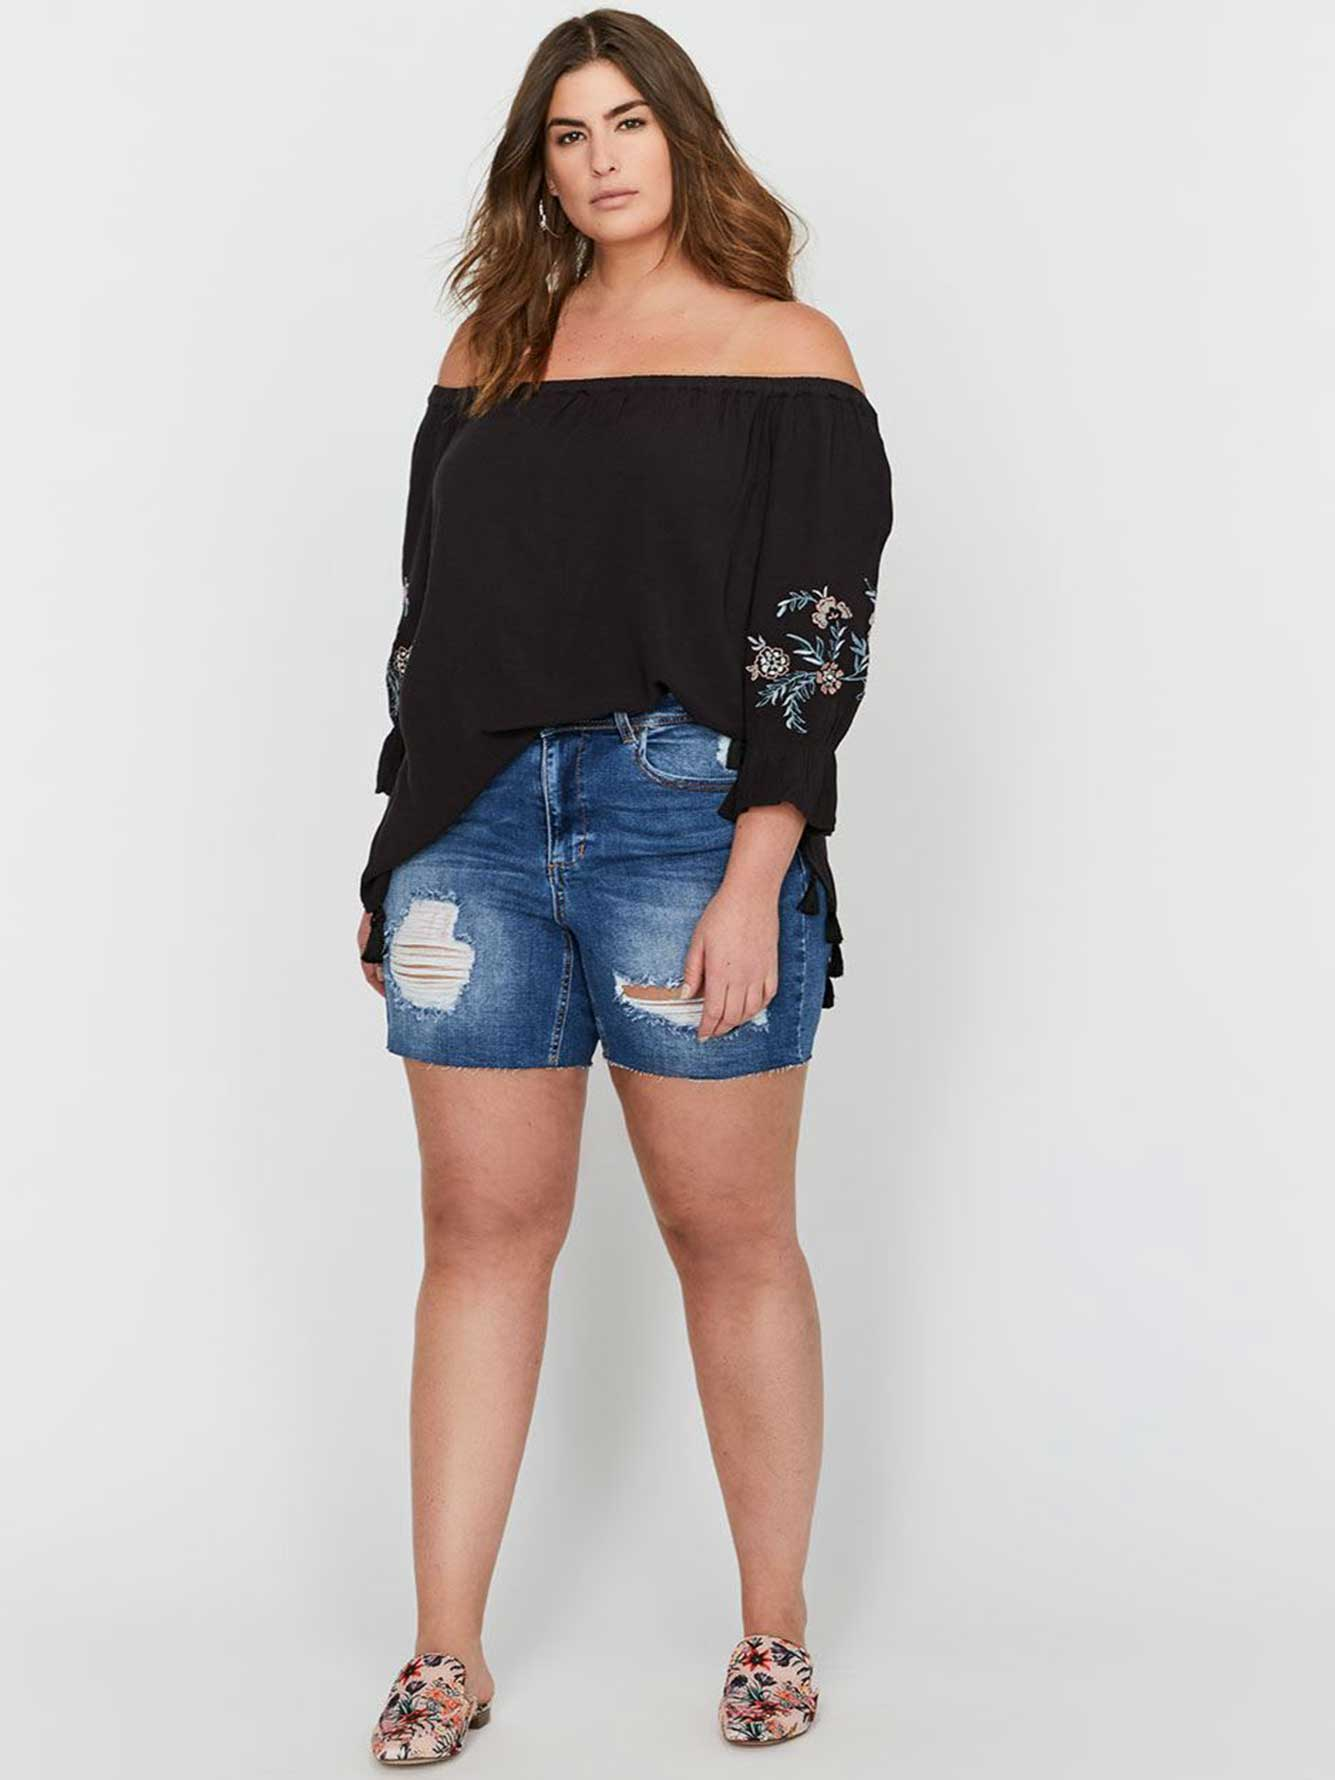 L&L Authentic Shorts with Rips & Raw Edge